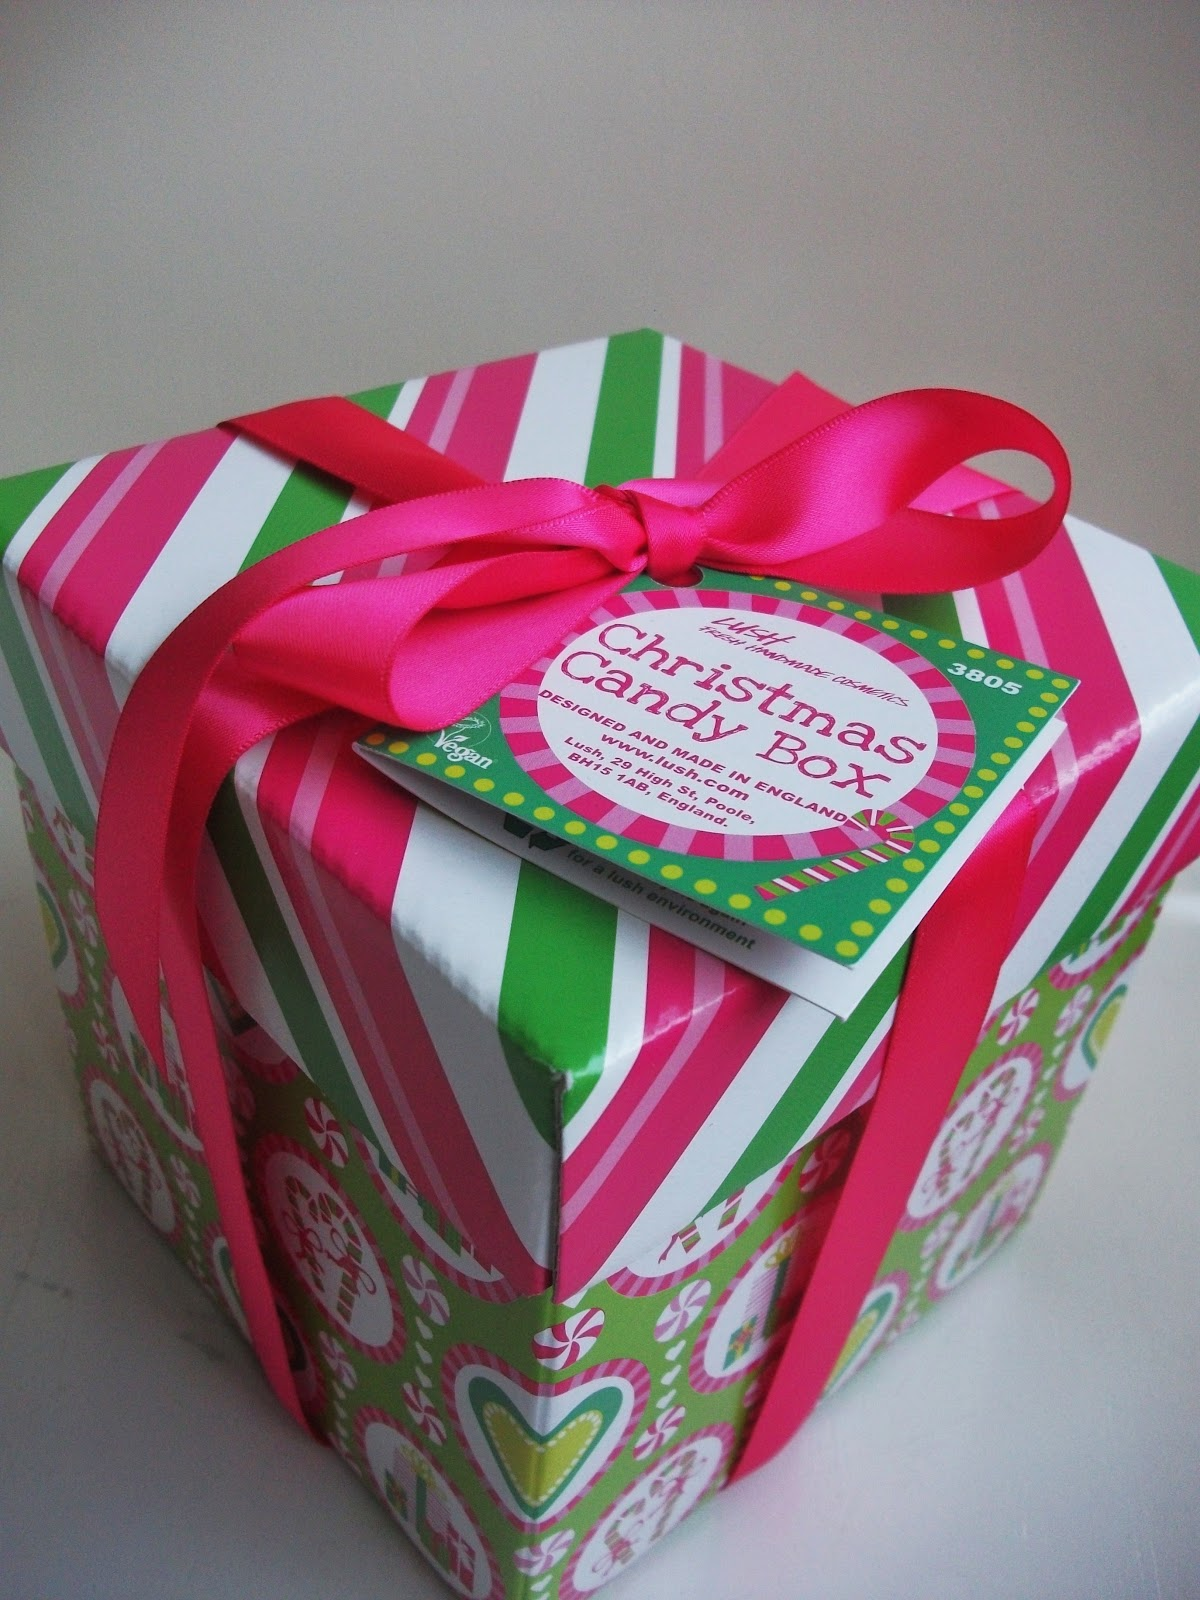 Glitter and sparkle the lush christmas candy box